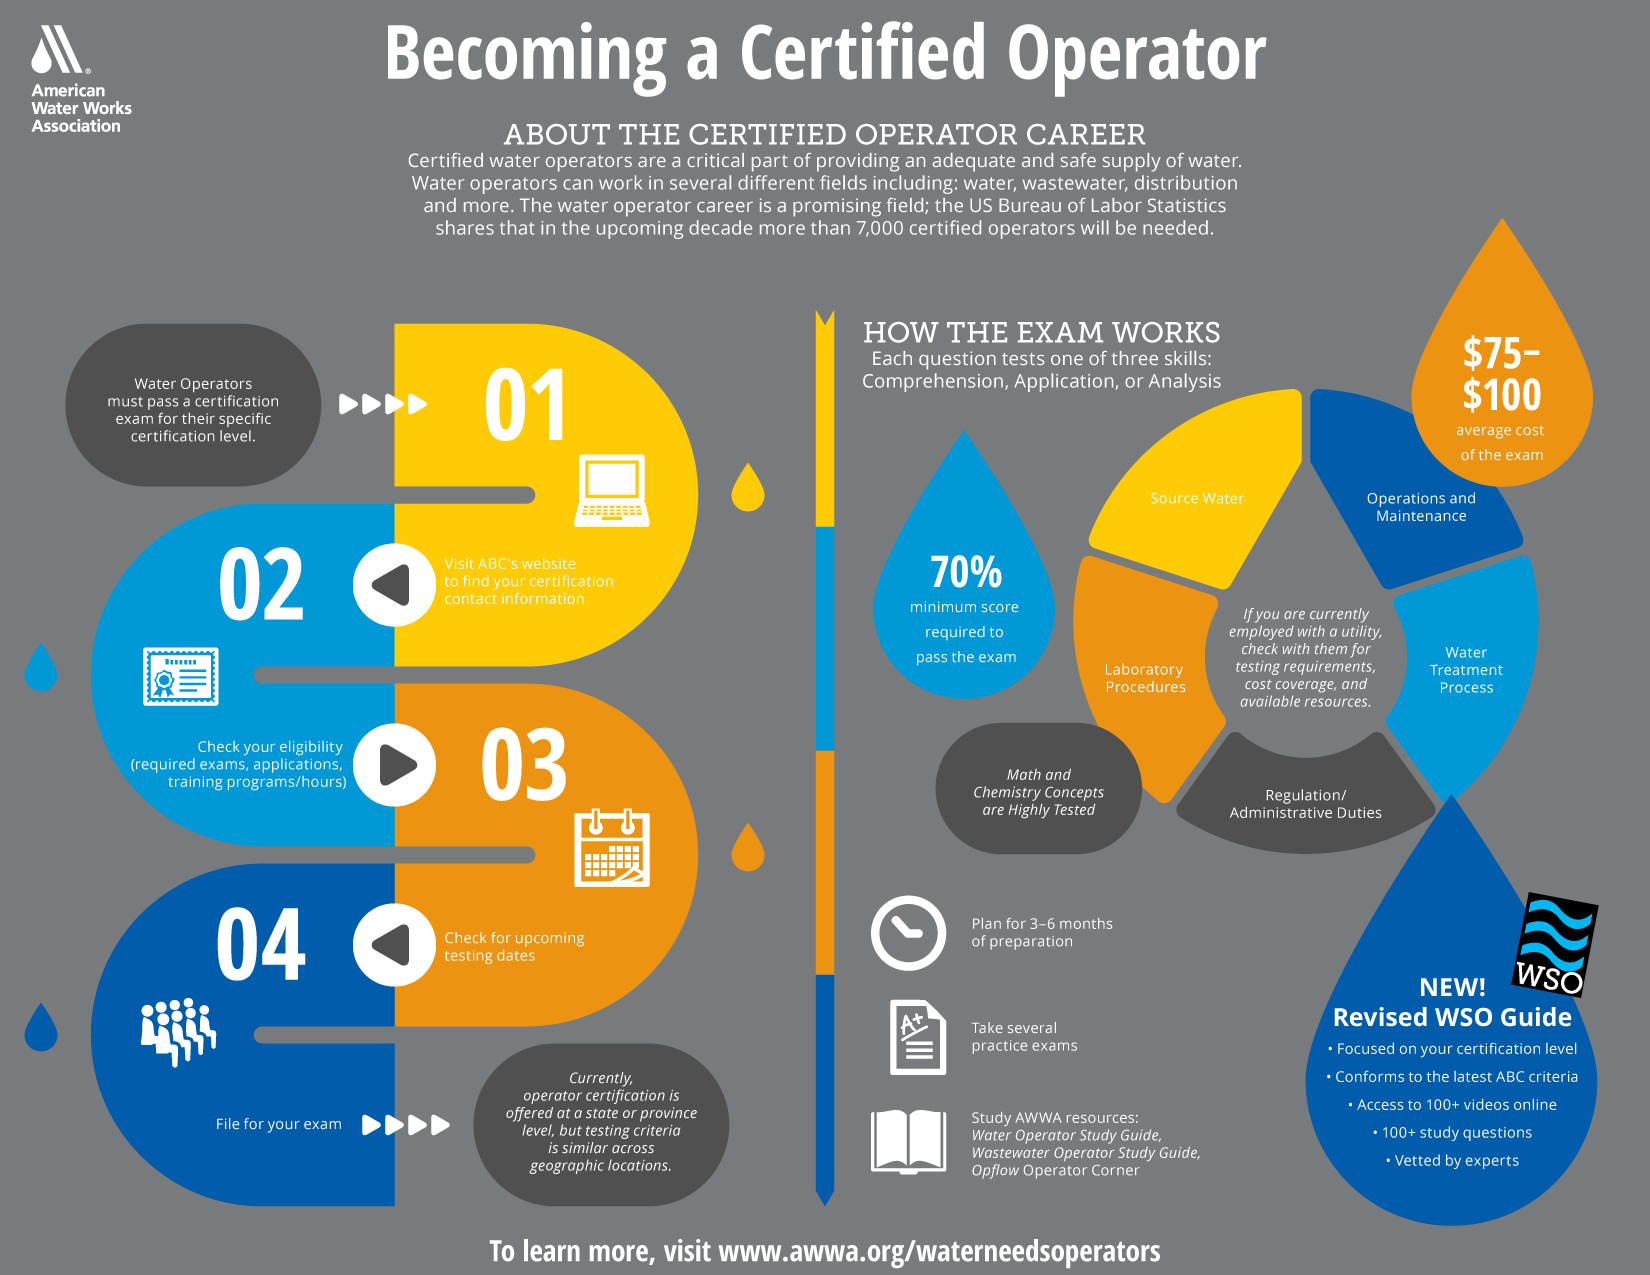 Become a Certified Operator